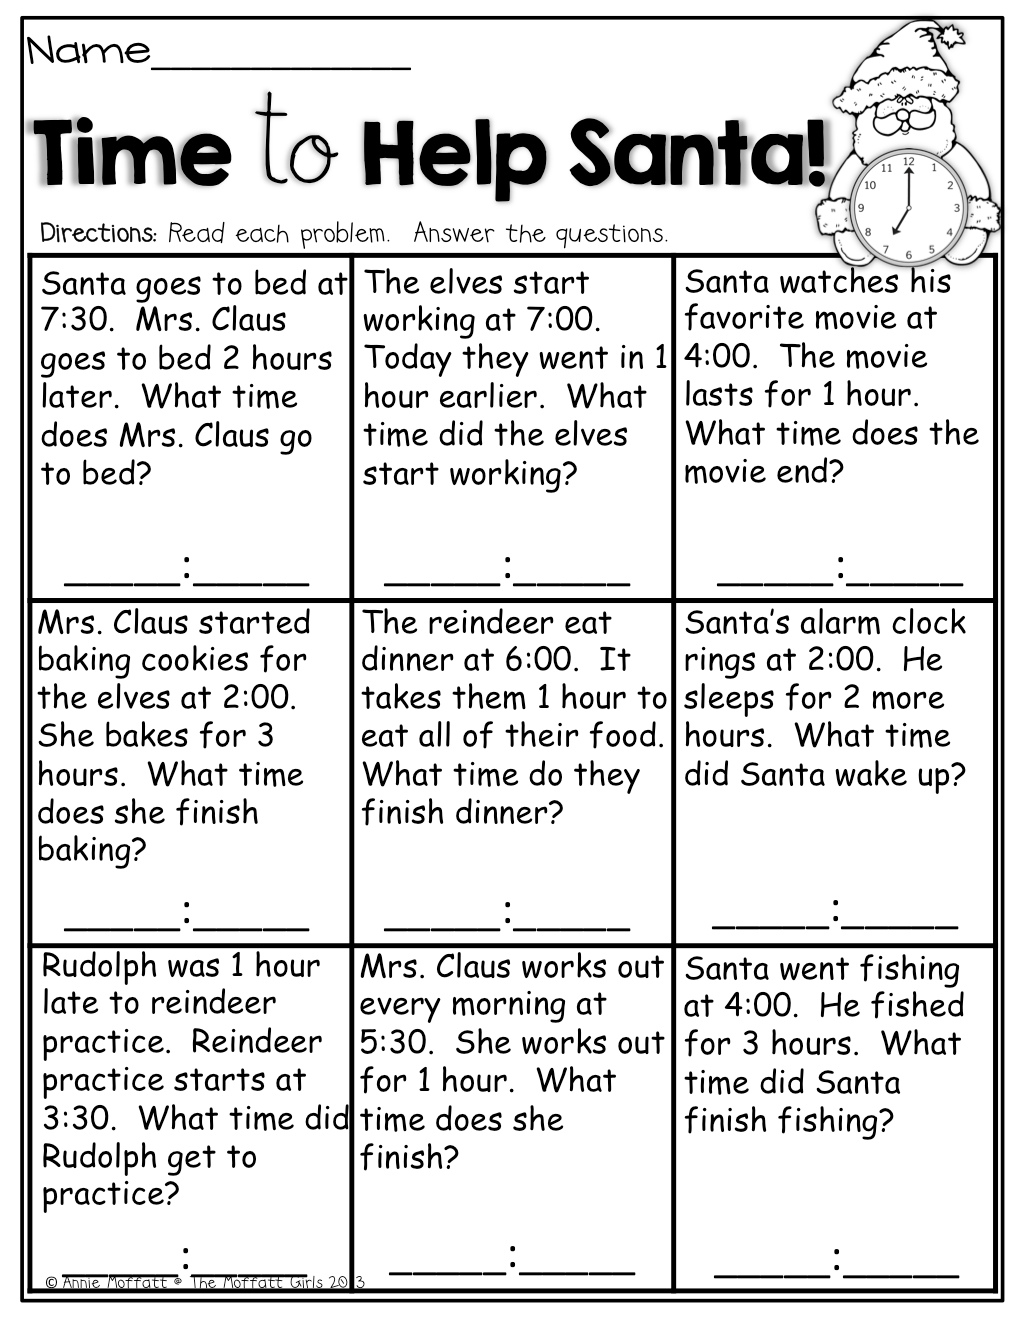 Time To Help Santa Simple Word Problems About Time So